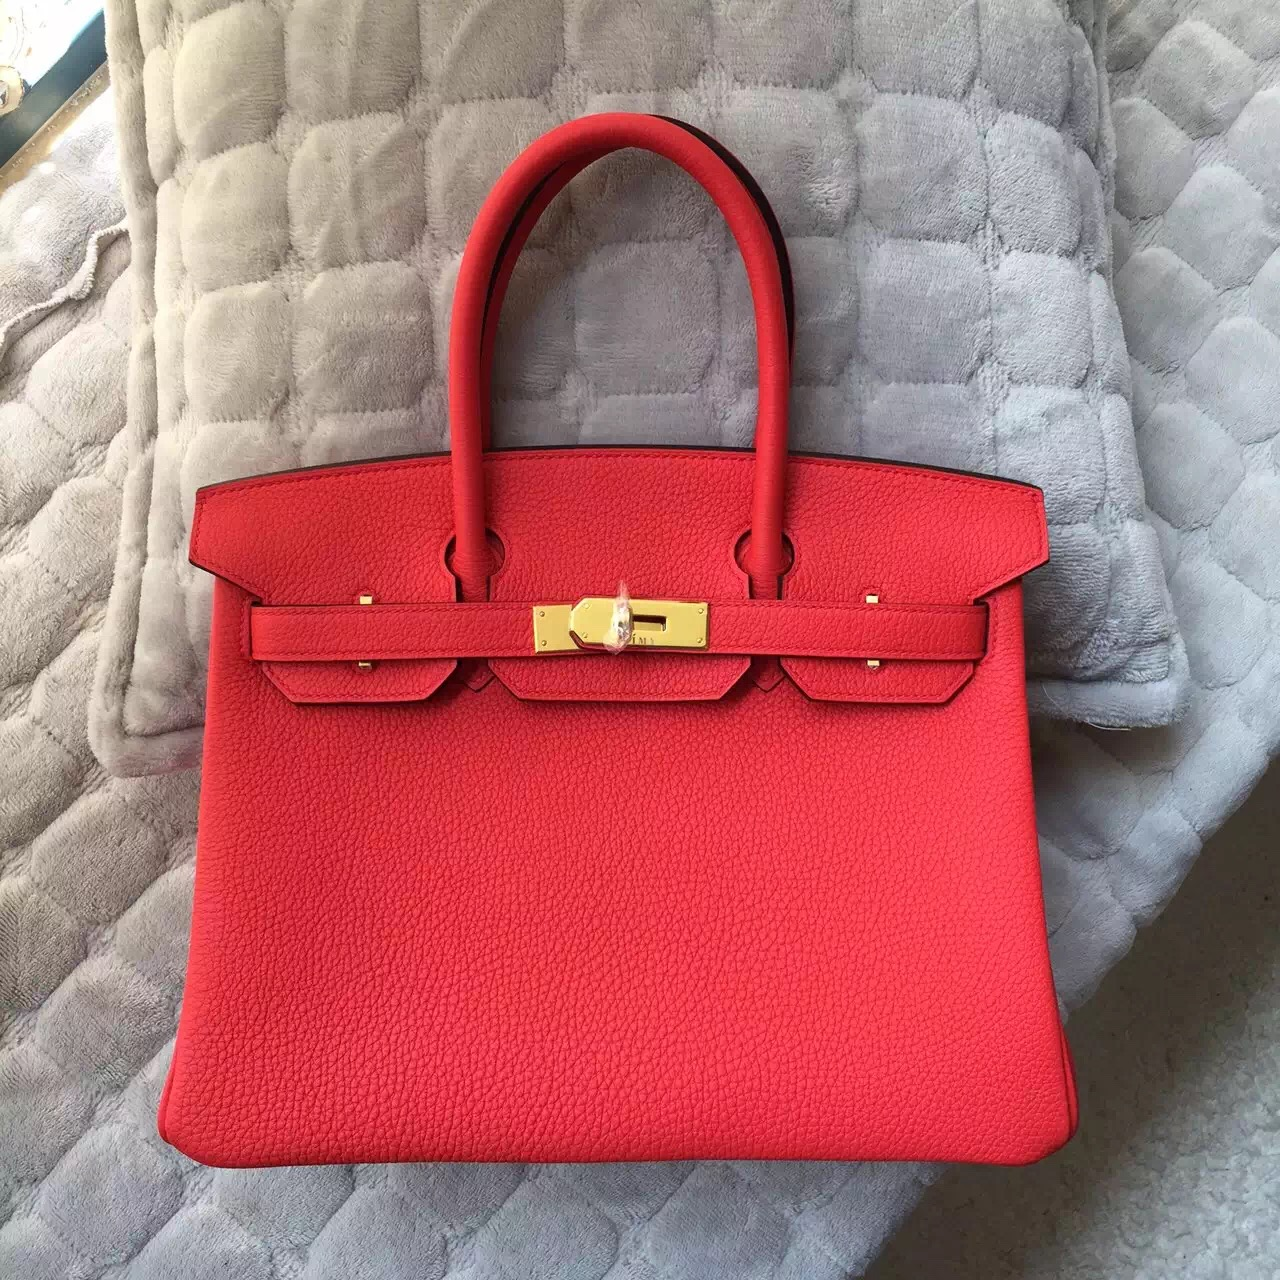 sac hermes birkin orange - Hermes Birkin 30 in 2R Peony Red Togo Calfskin Leather Tote Bag ...